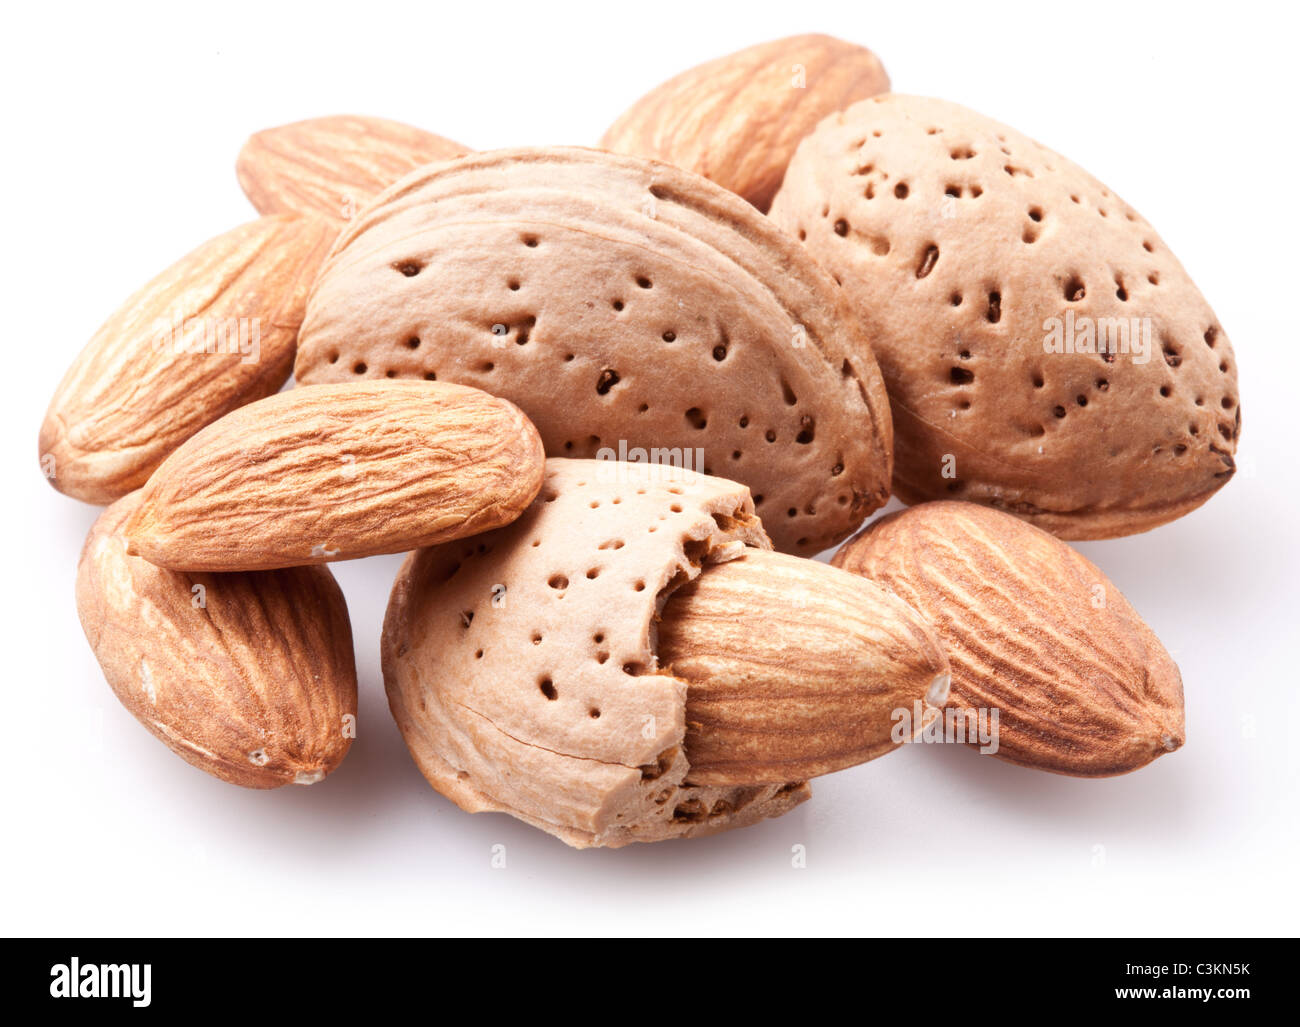 Group of almond nuts with leaves. Isolated on a white background. - Stock Image